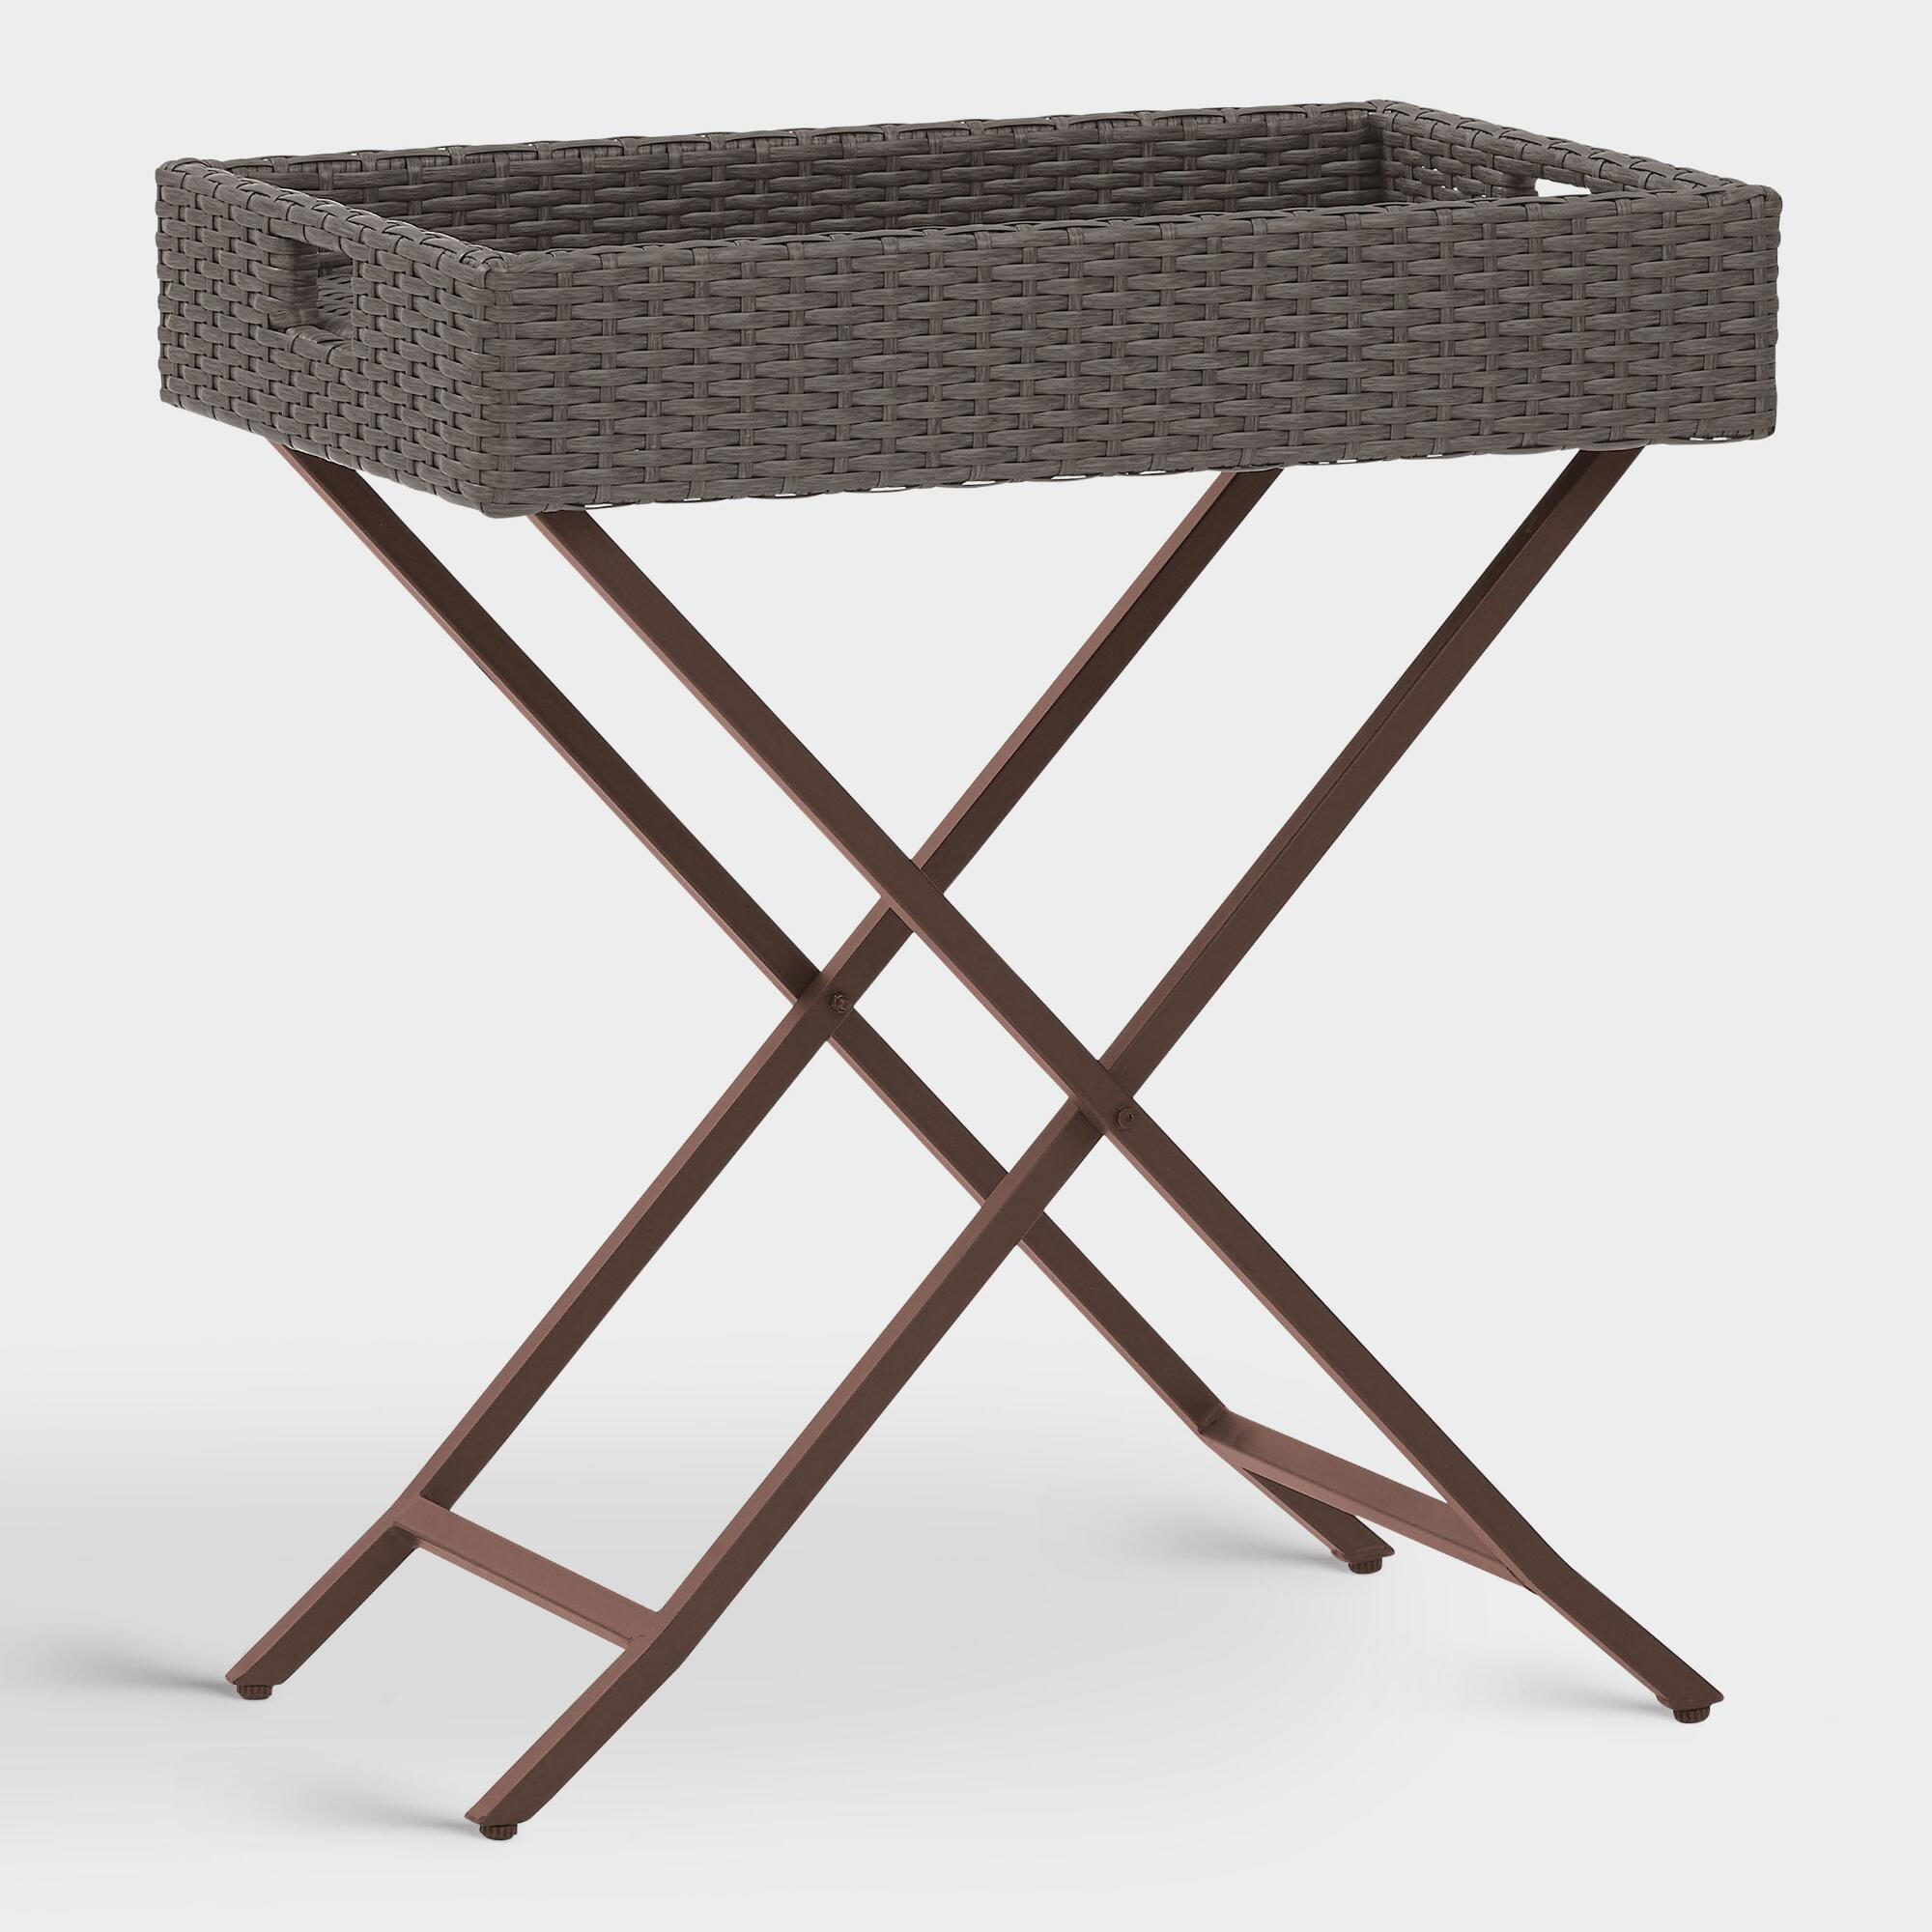 Gray All Weather Wicker Pinamar Outdoor Patio Butler Tray Table by World Market